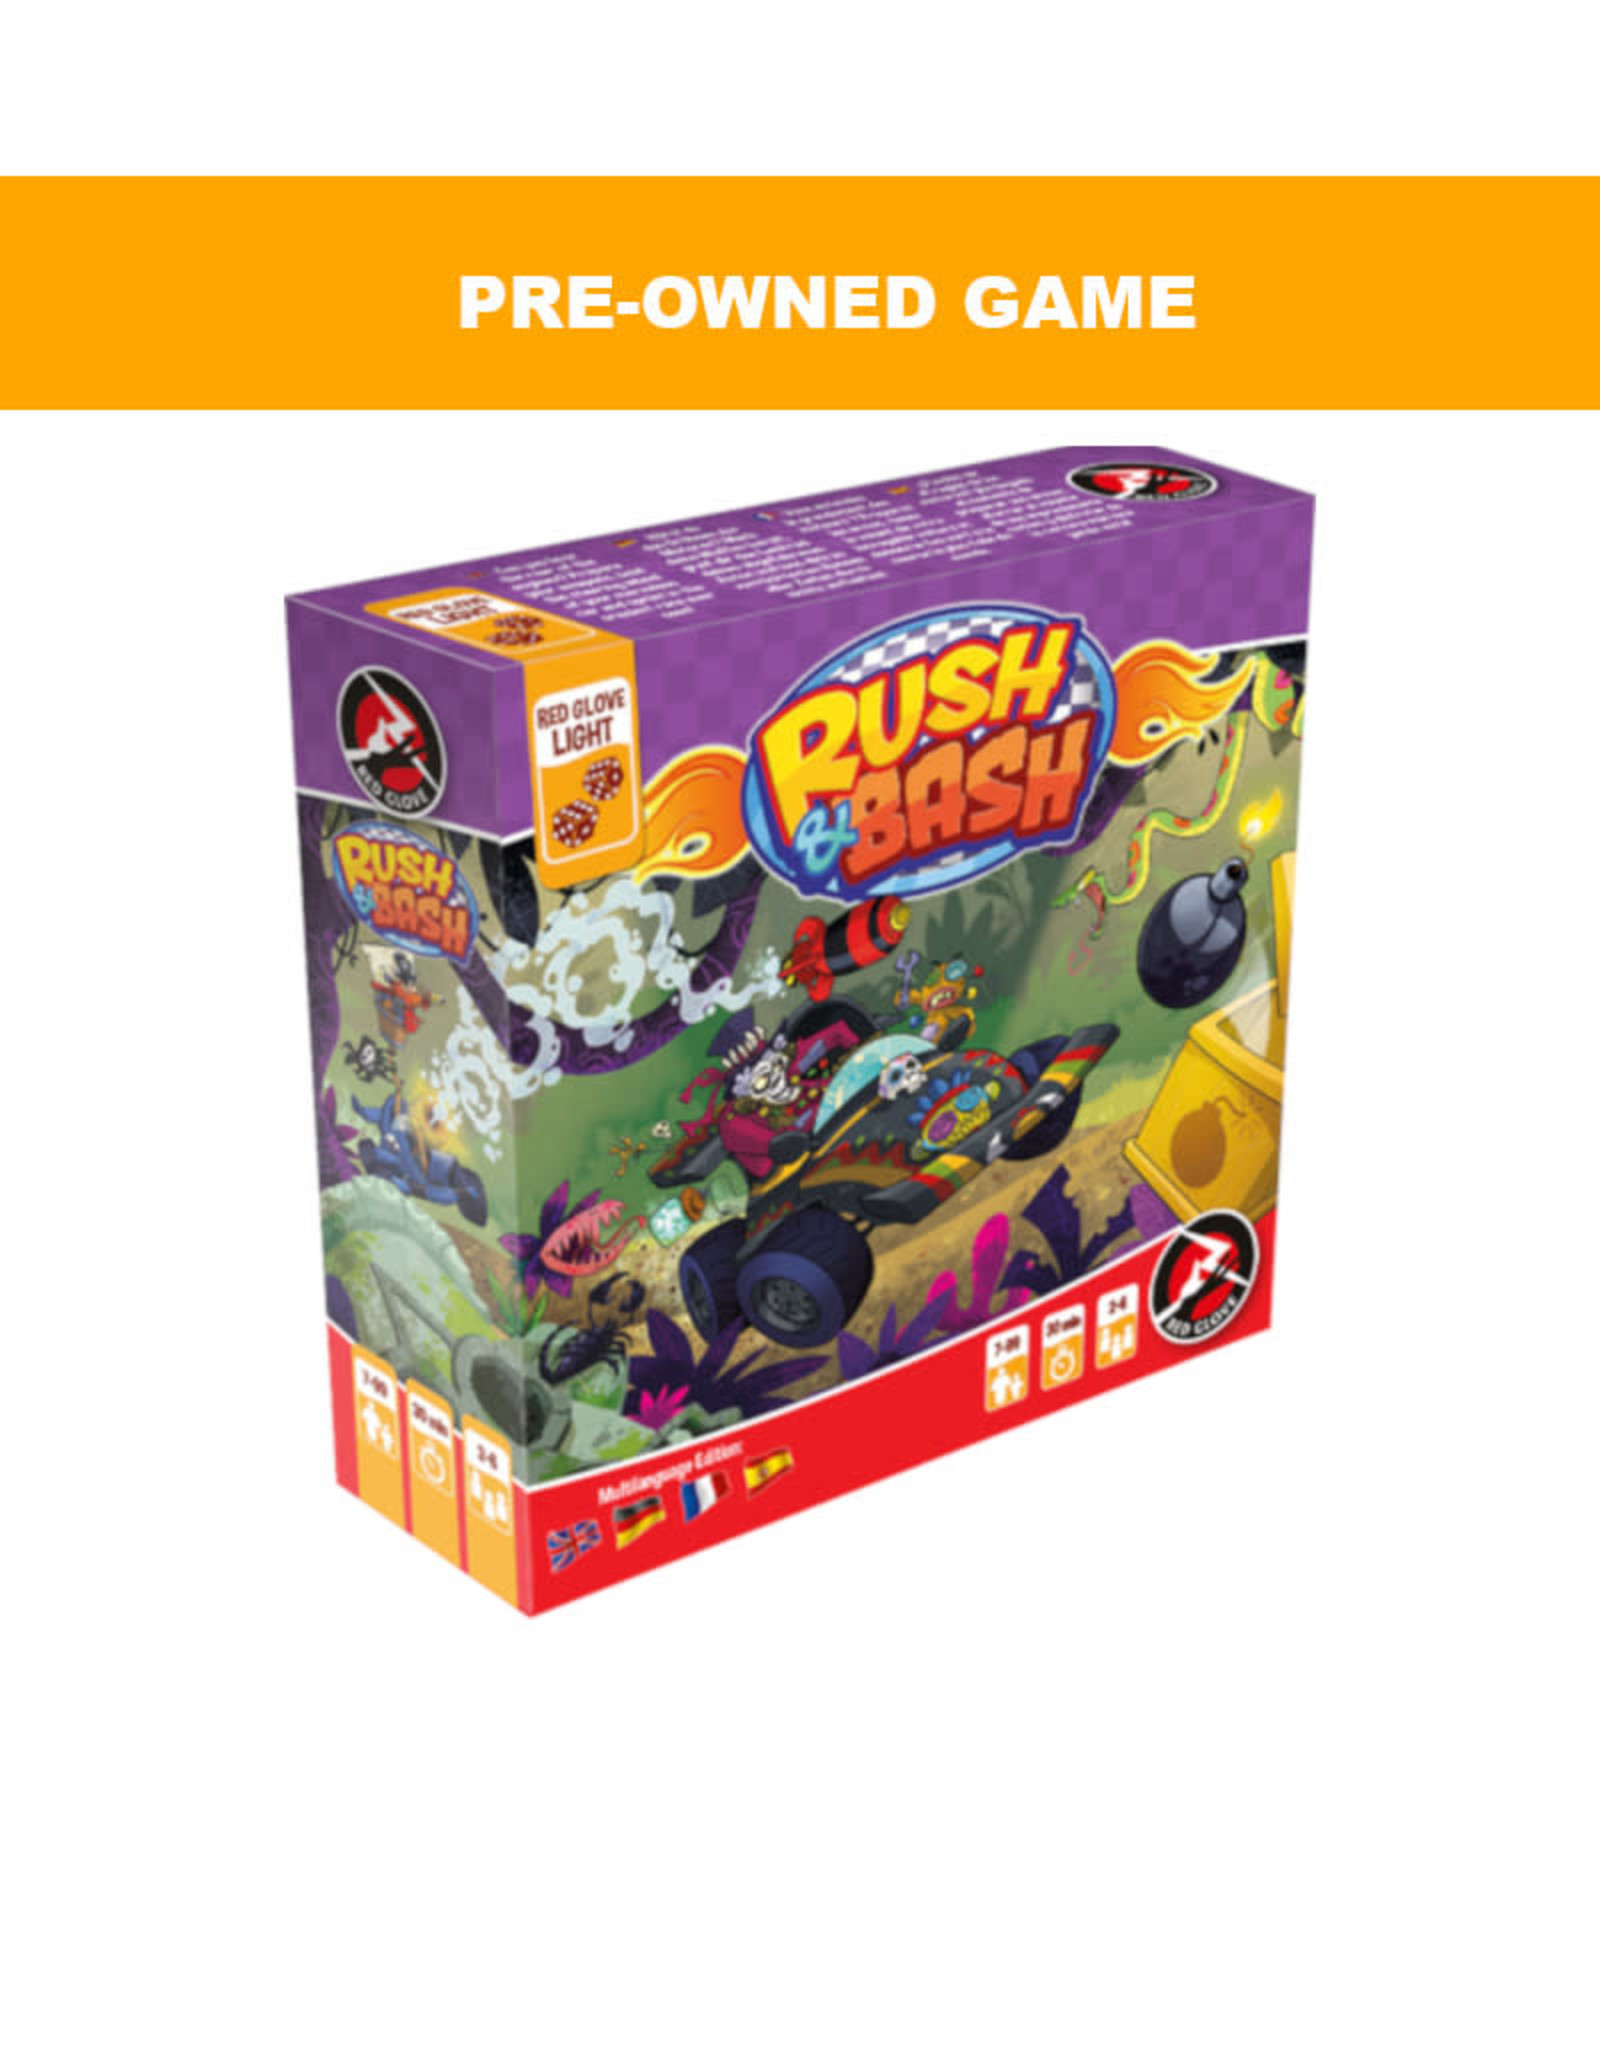 Game Night Games (Pre-Owned Game) Rush and Bash